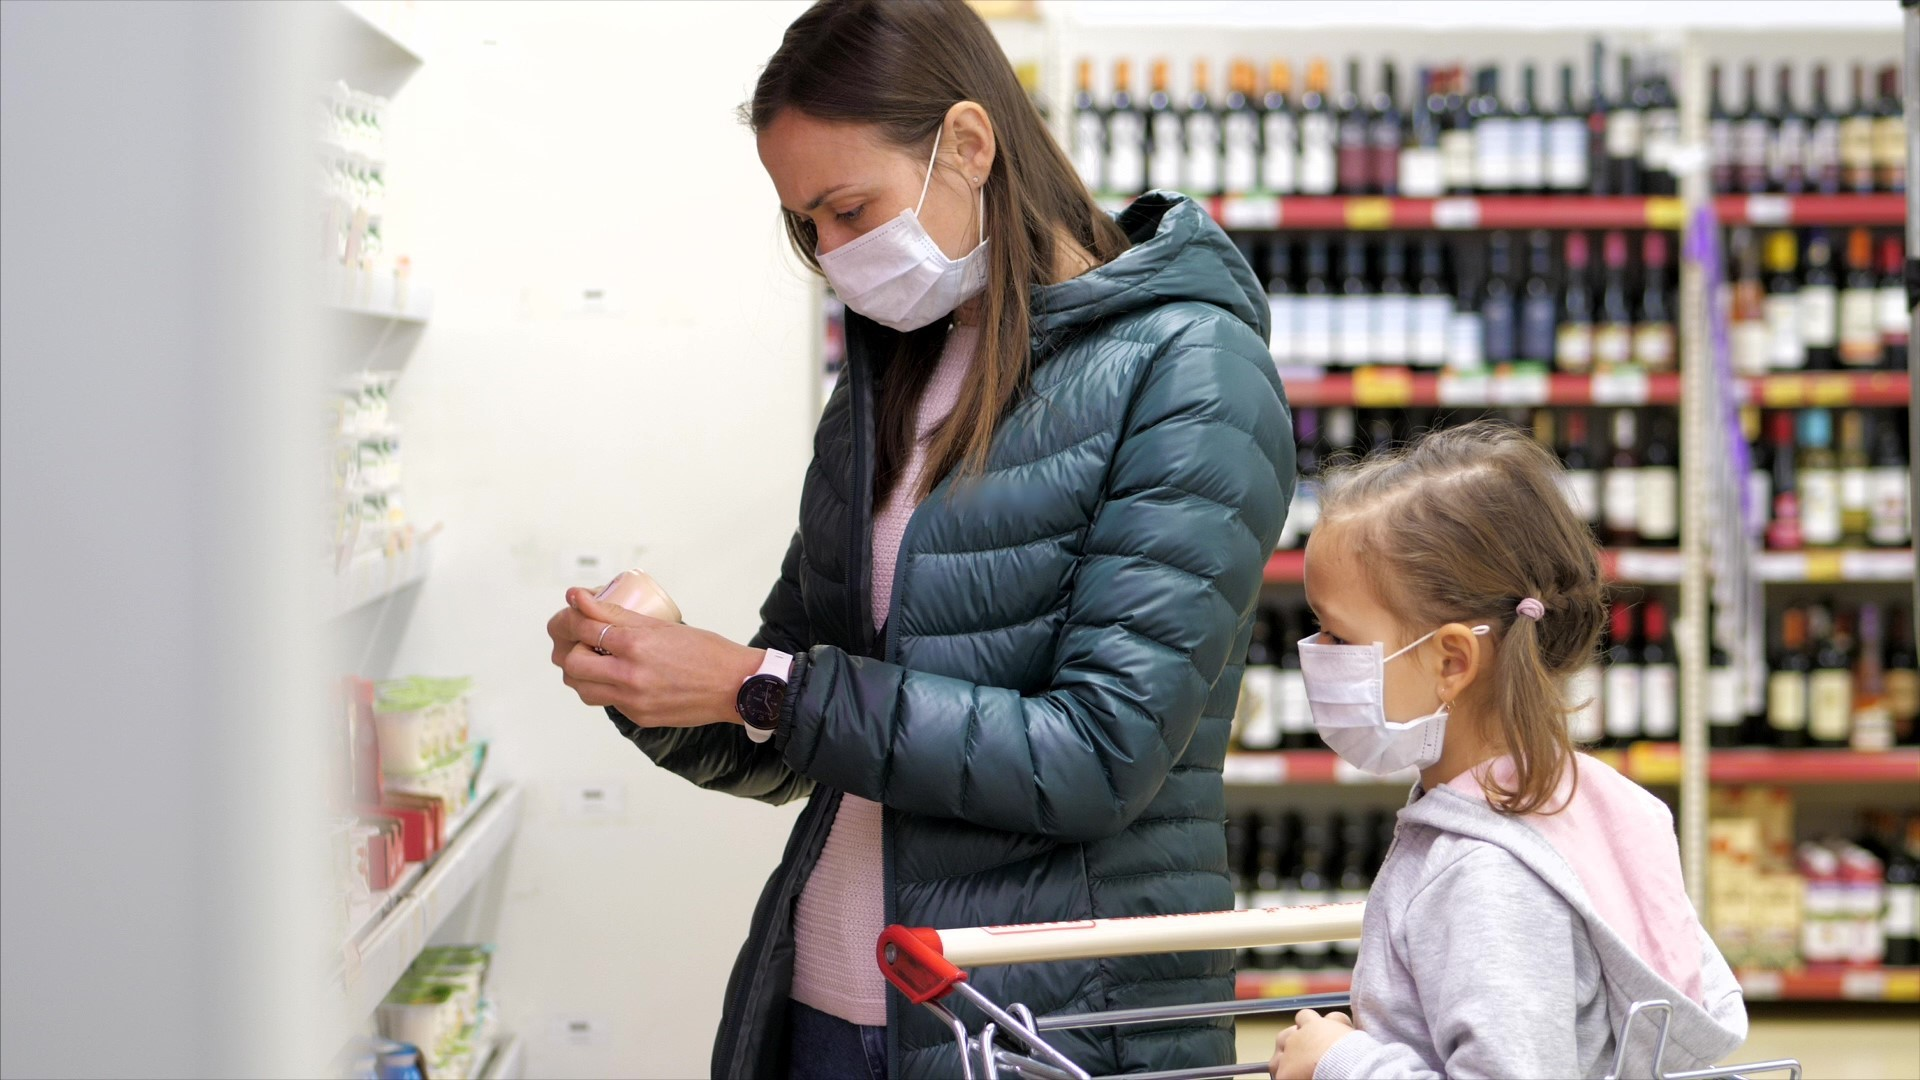 A mother and child wearing white surgical masks, shopping in a grocery store